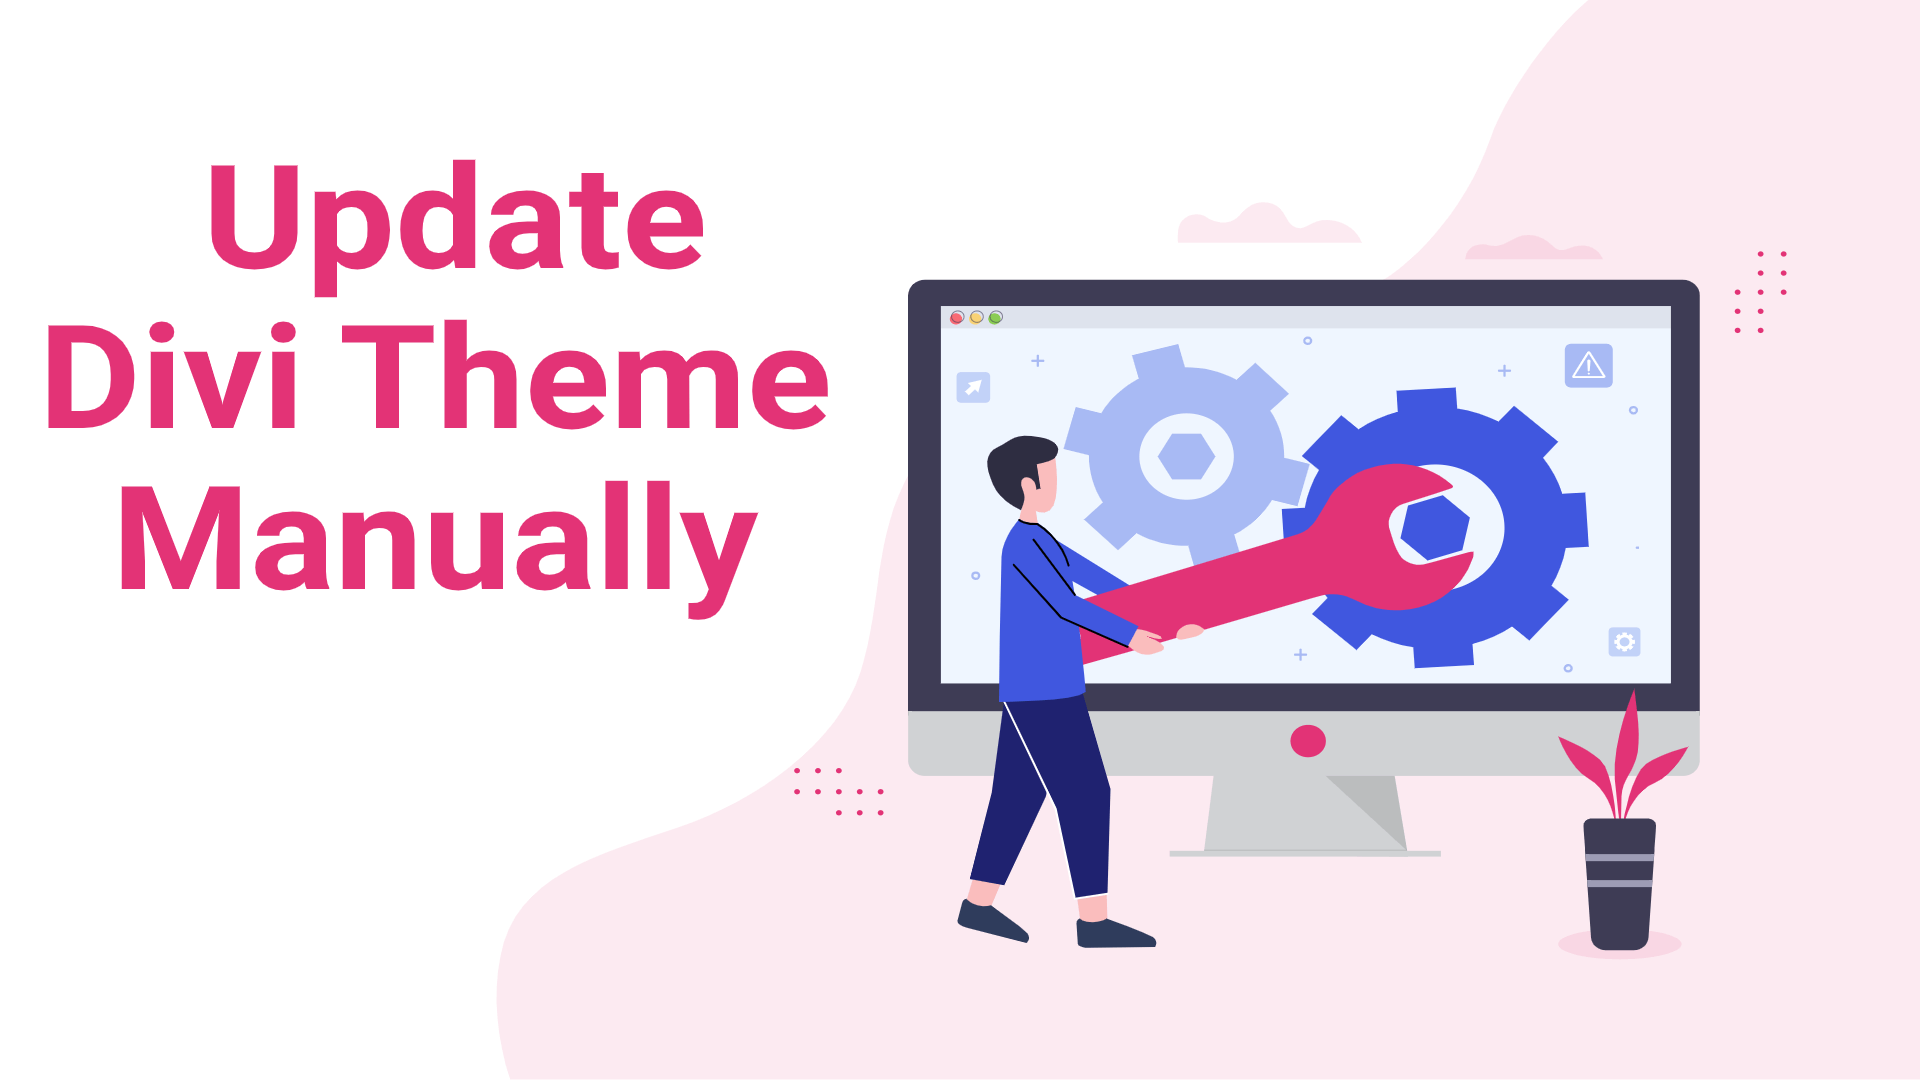 Manually update your Divi theme